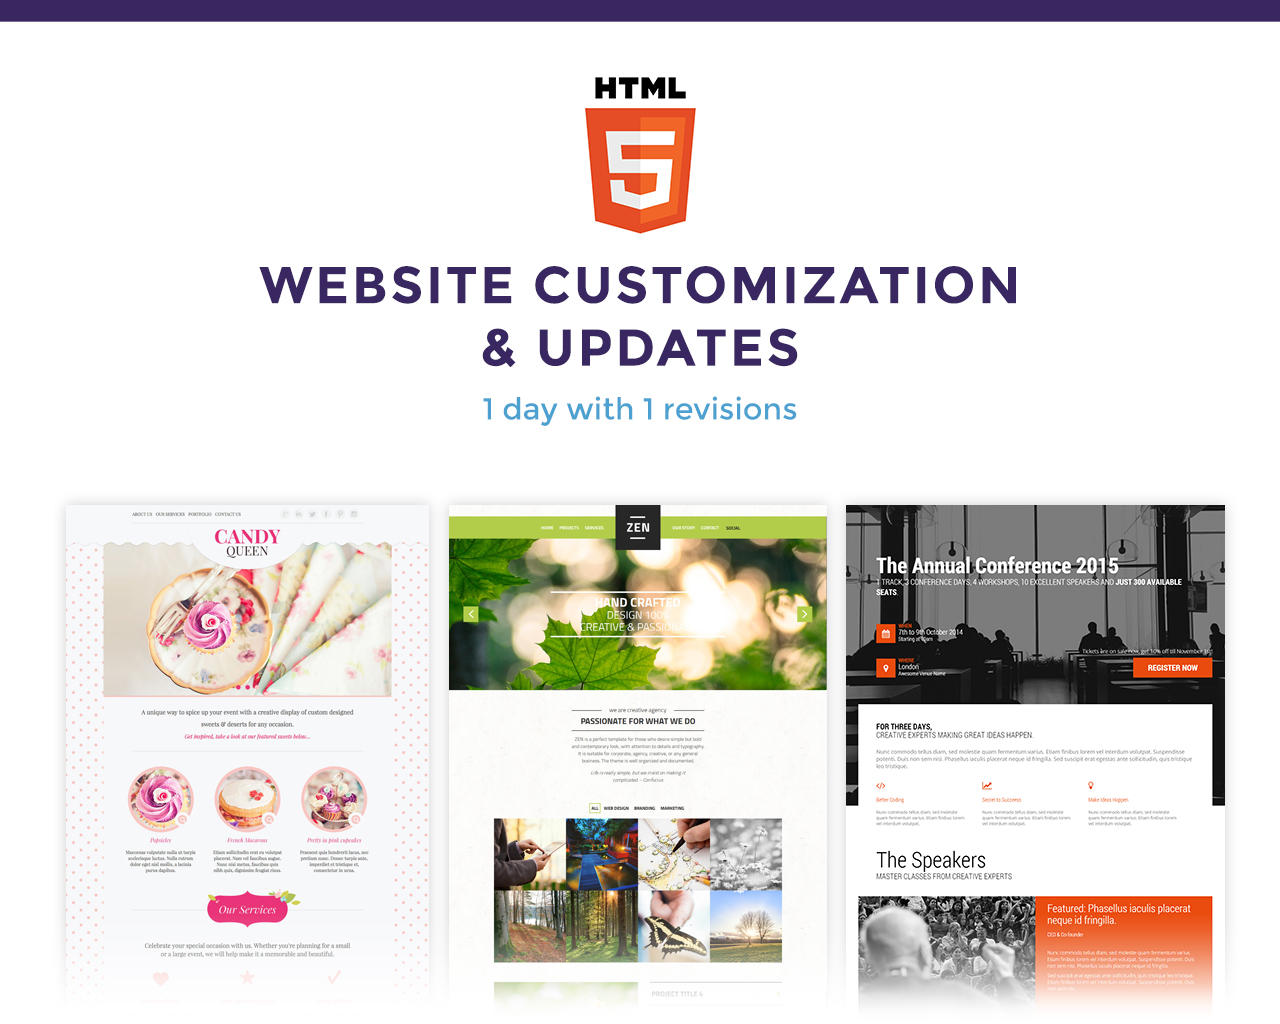 ThemeForest HTML Template Customization by magethemes - 70381